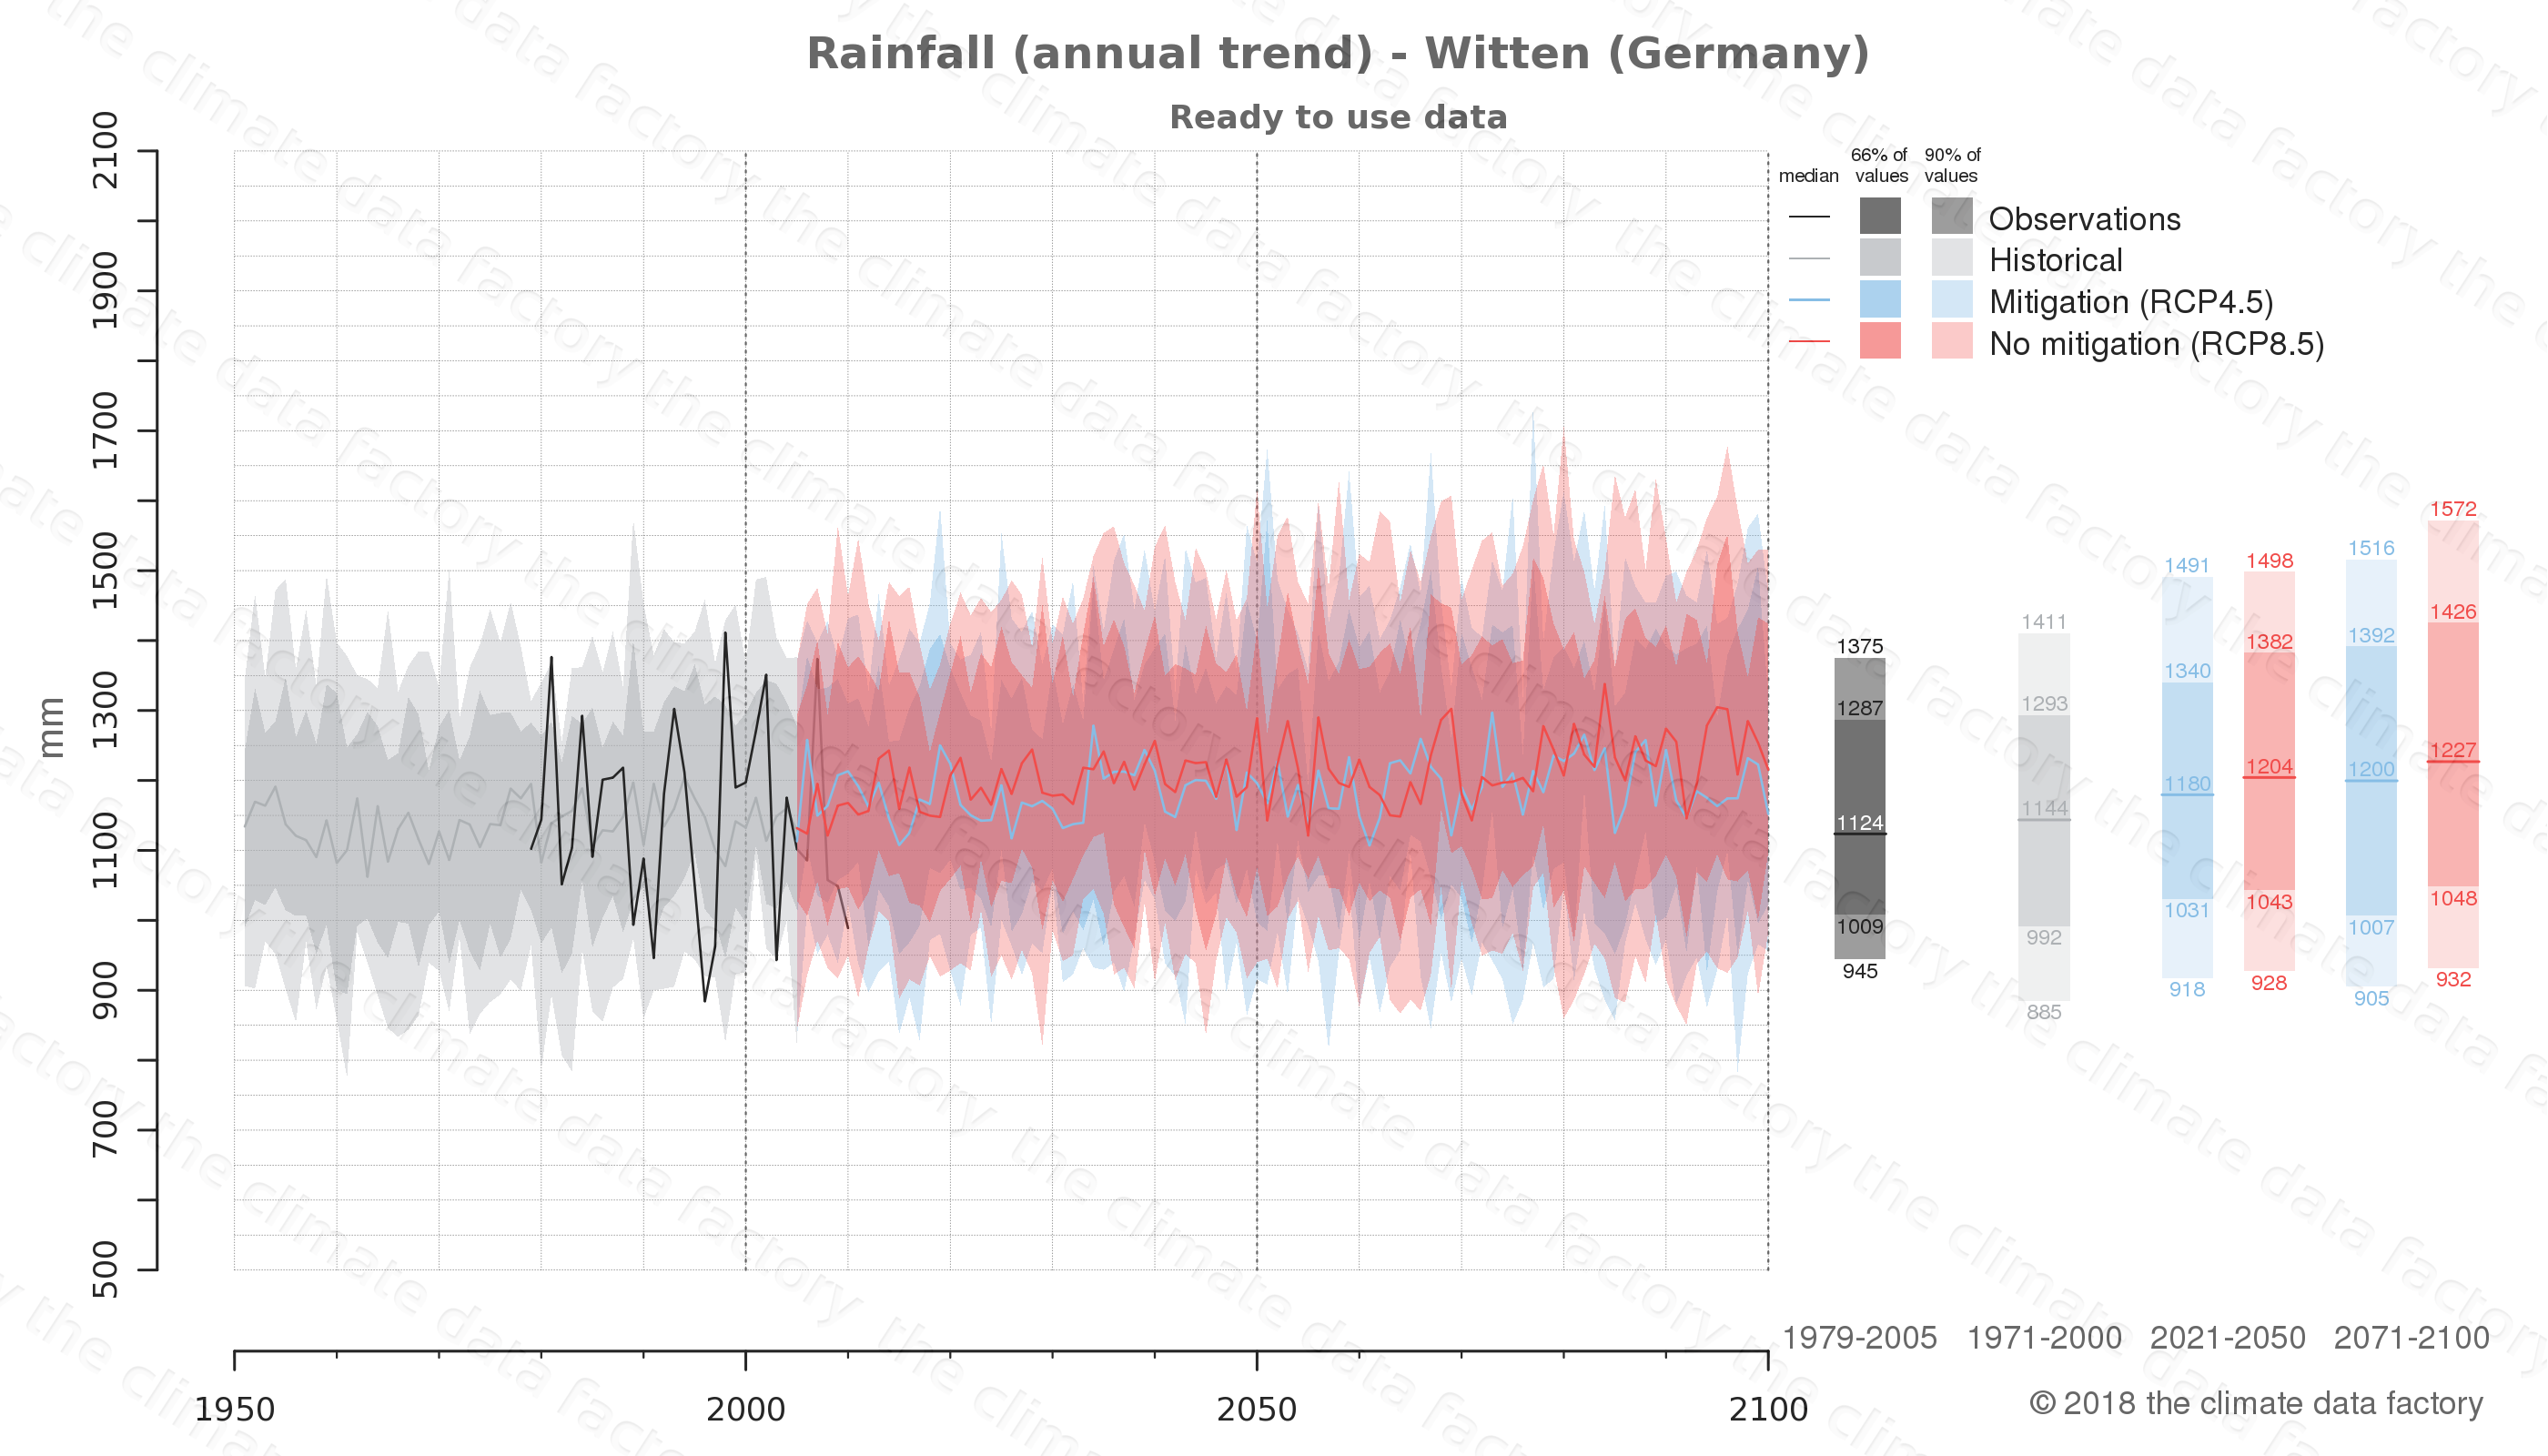 climate change data policy adaptation climate graph city data rainfall witten germany